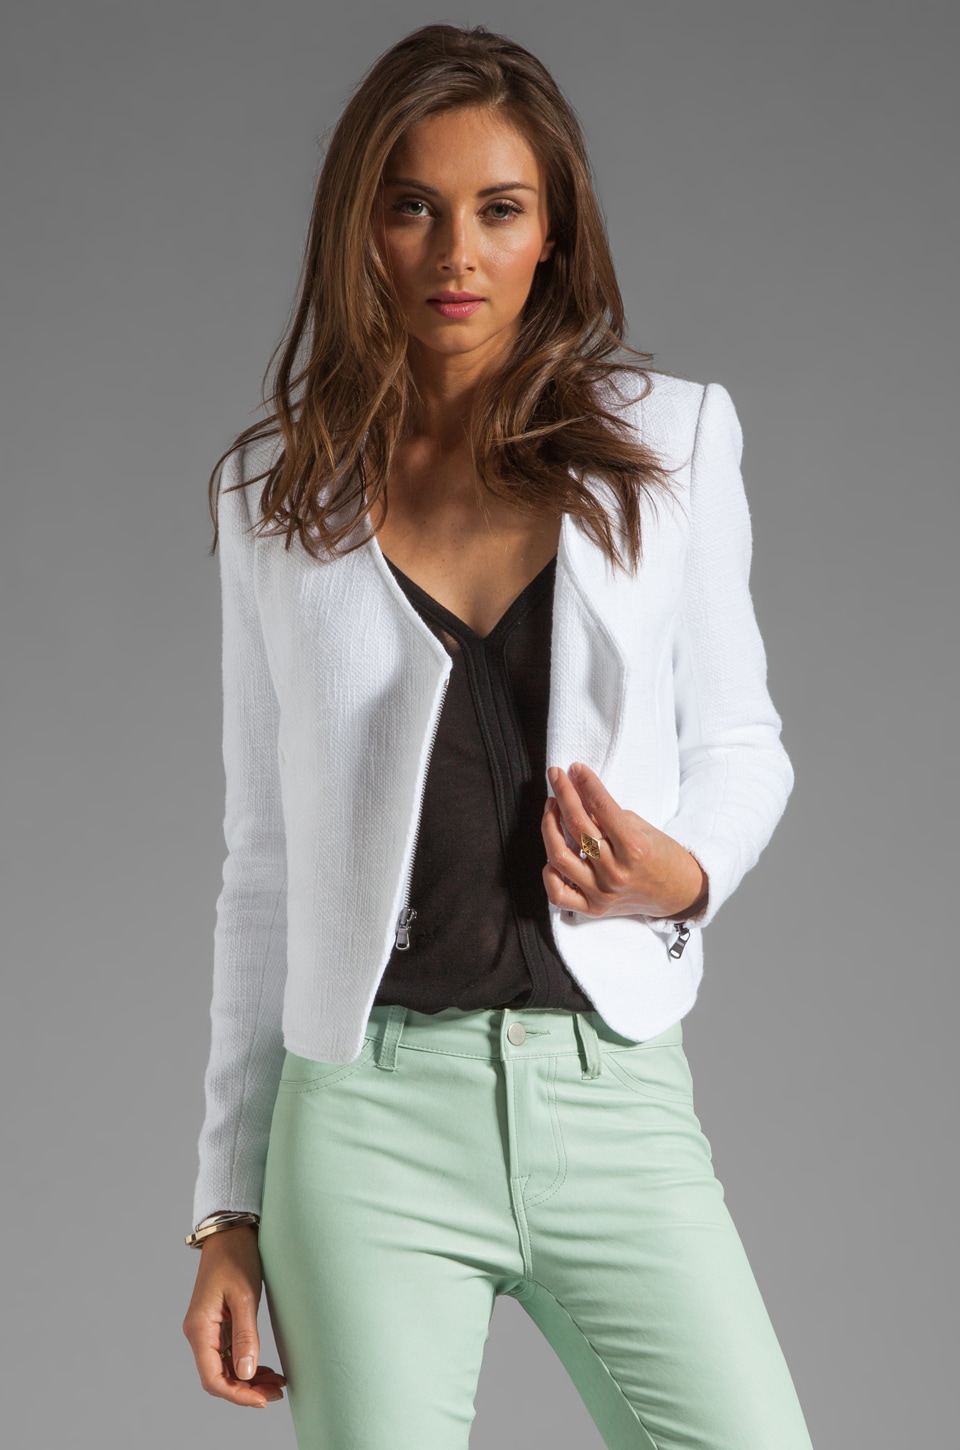 Tibi Basketweave Jacket in White